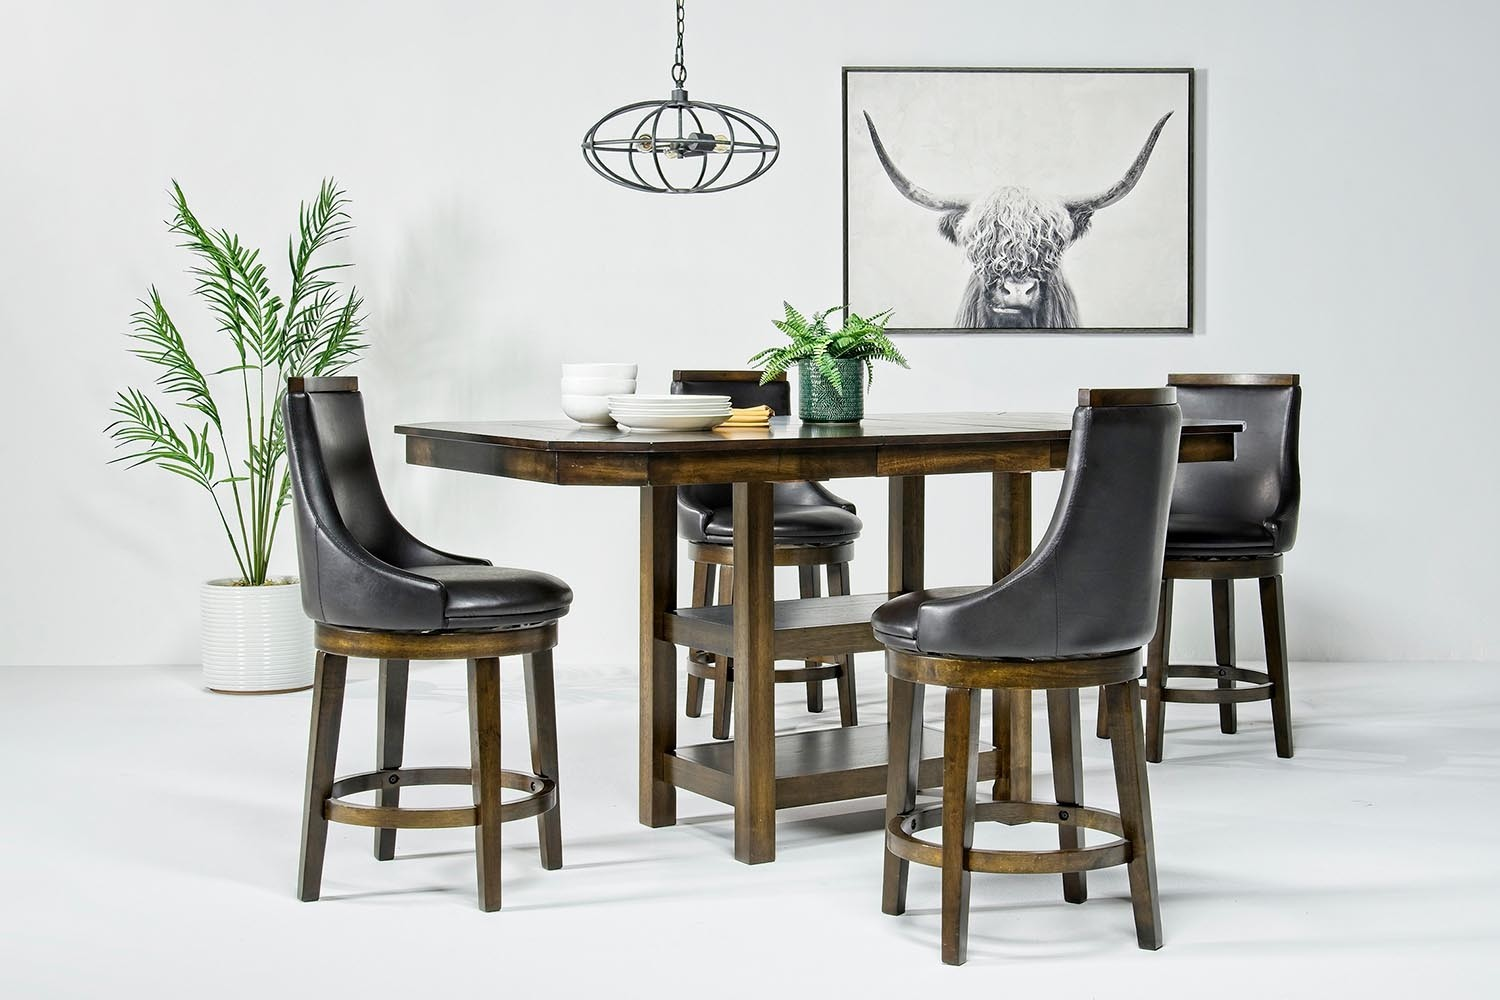 new haven counter height dining room mor furniture for less rh morfurniture com